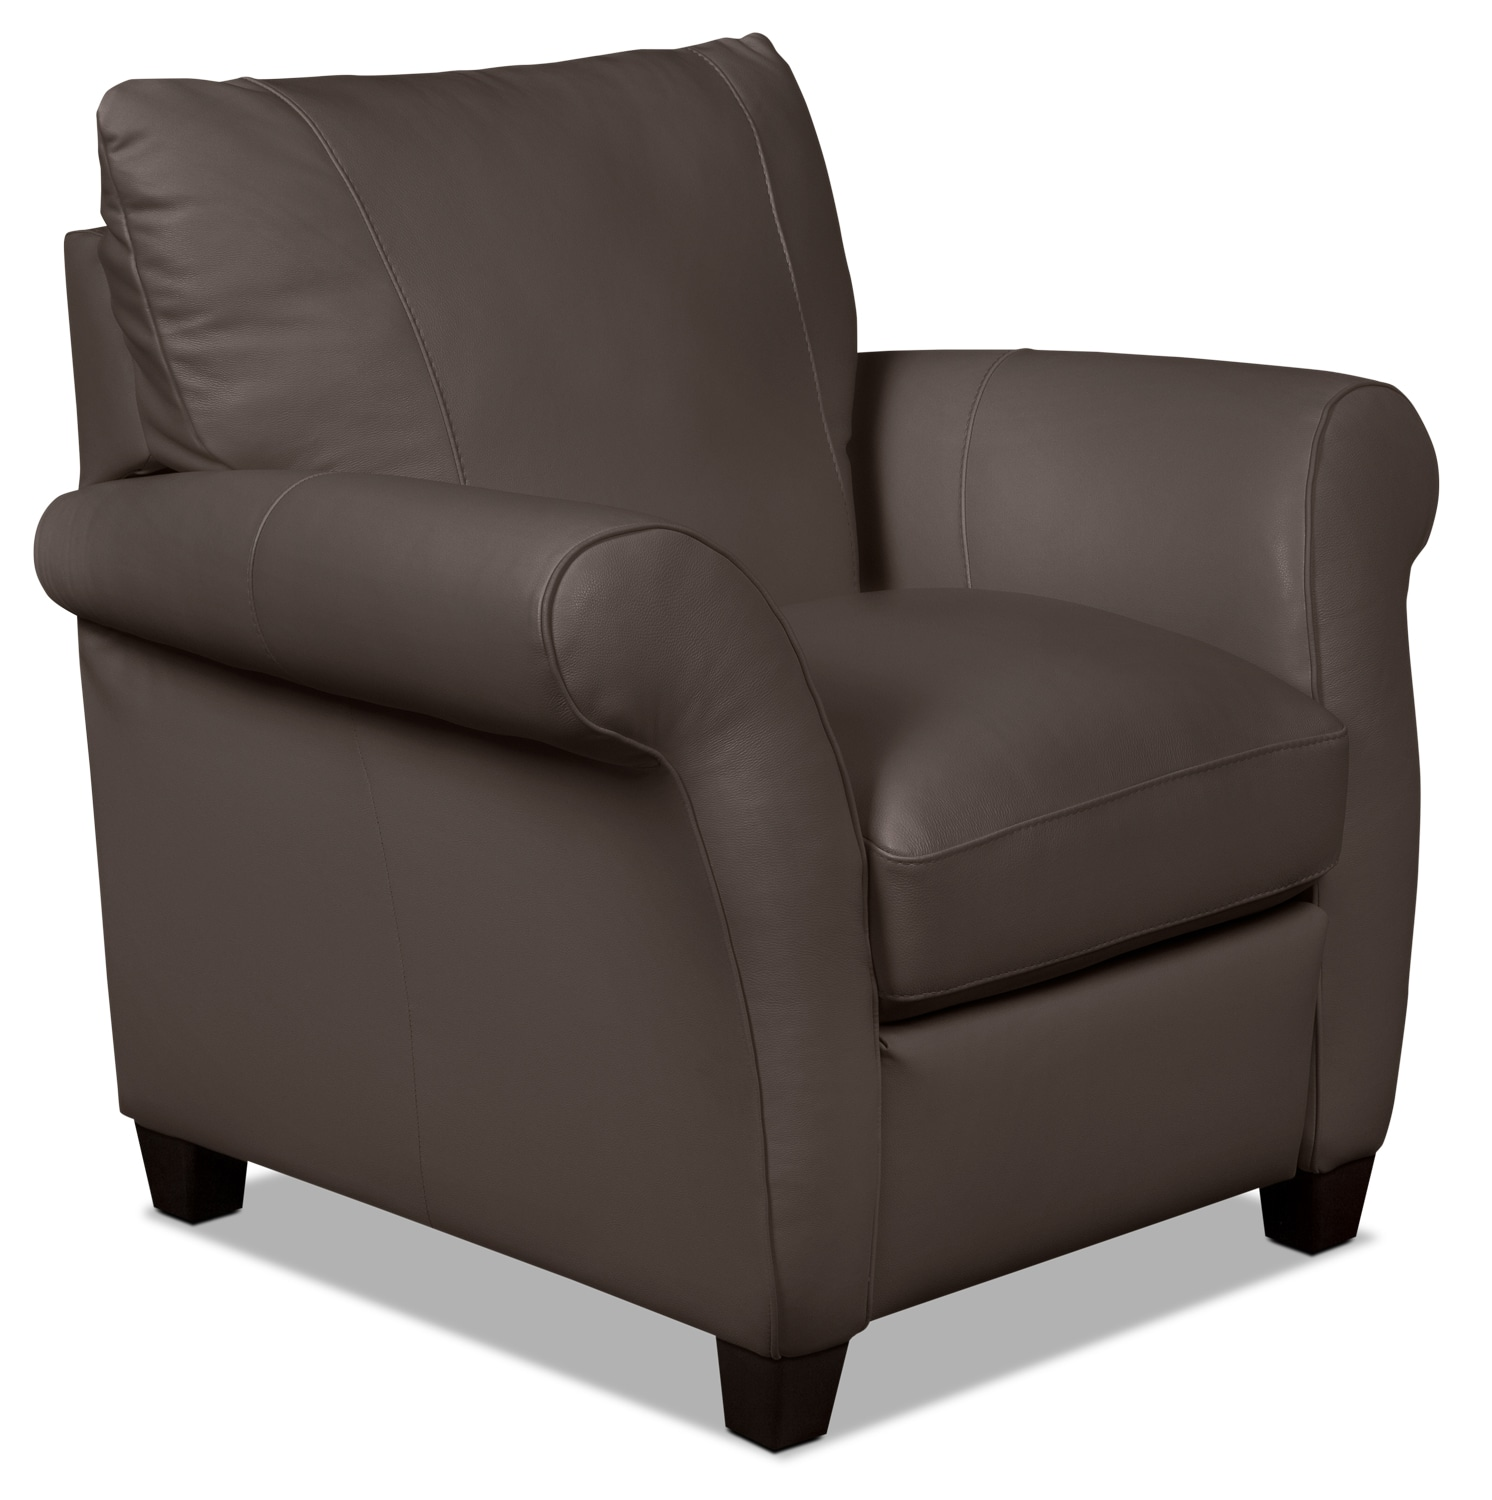 Layla Genuine Leather Reclining Chair – Brown